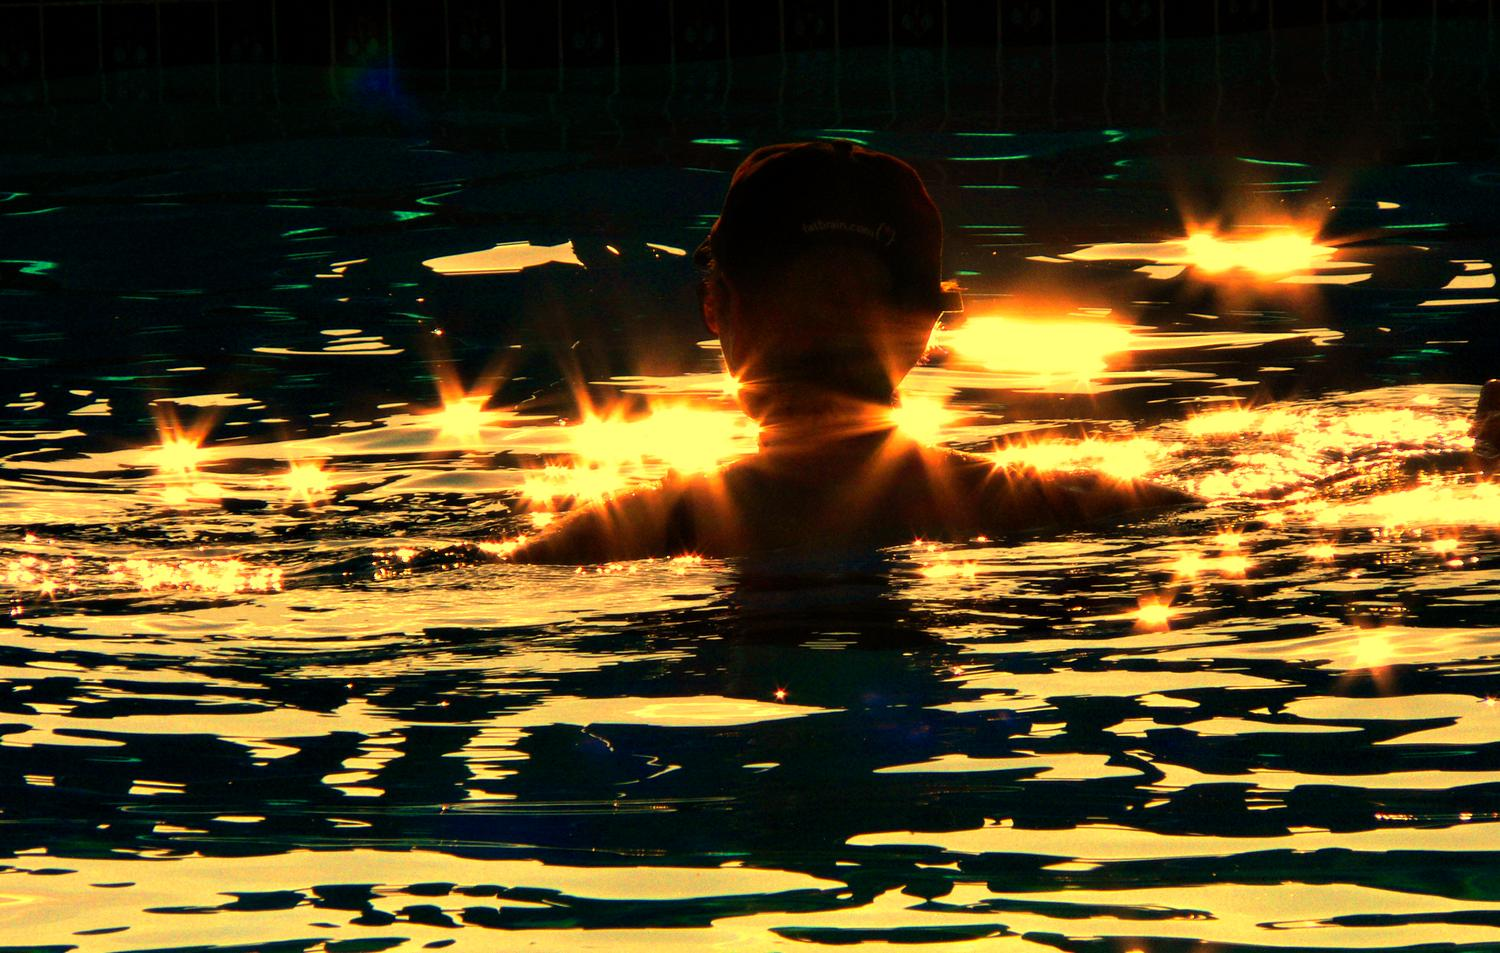 - In the pool - pictures of the Hobbitt - the artist's muse - I did this for Facebook - - art  - photography - by Tony Karp